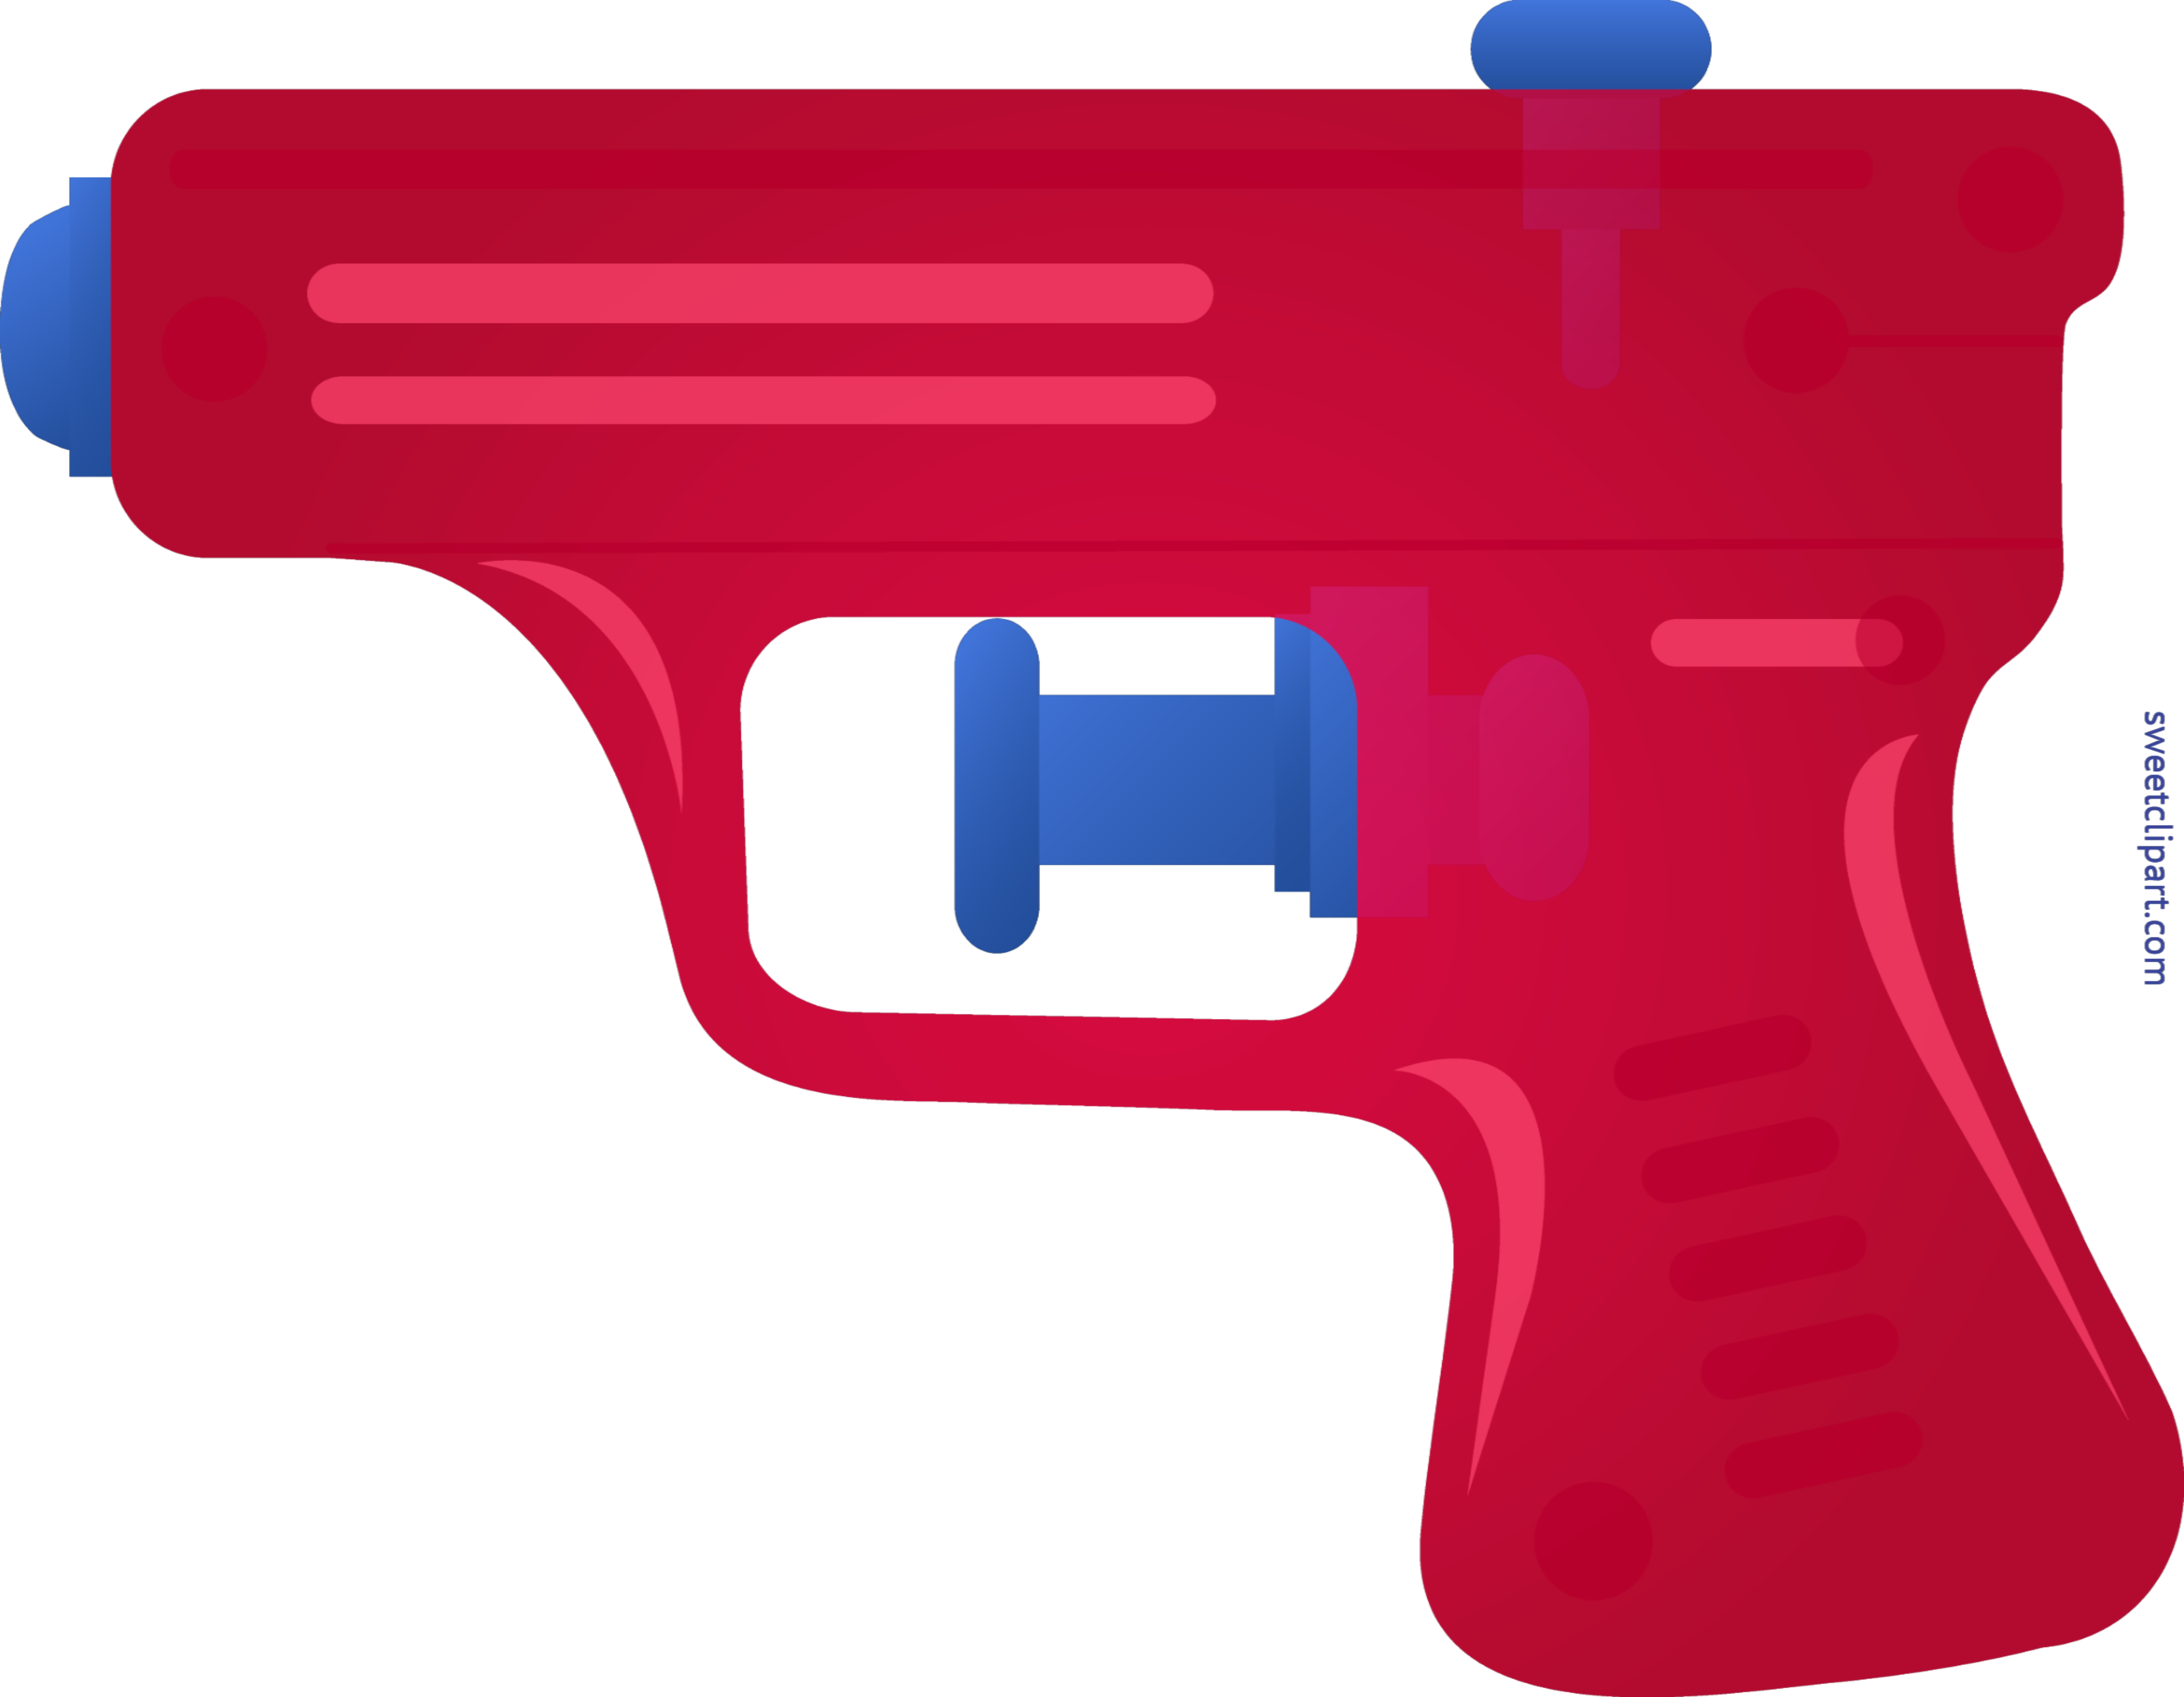 water gun clipart at getdrawings com free for personal use water rh getdrawings com clip art gunsite clipart gun muzzle front view